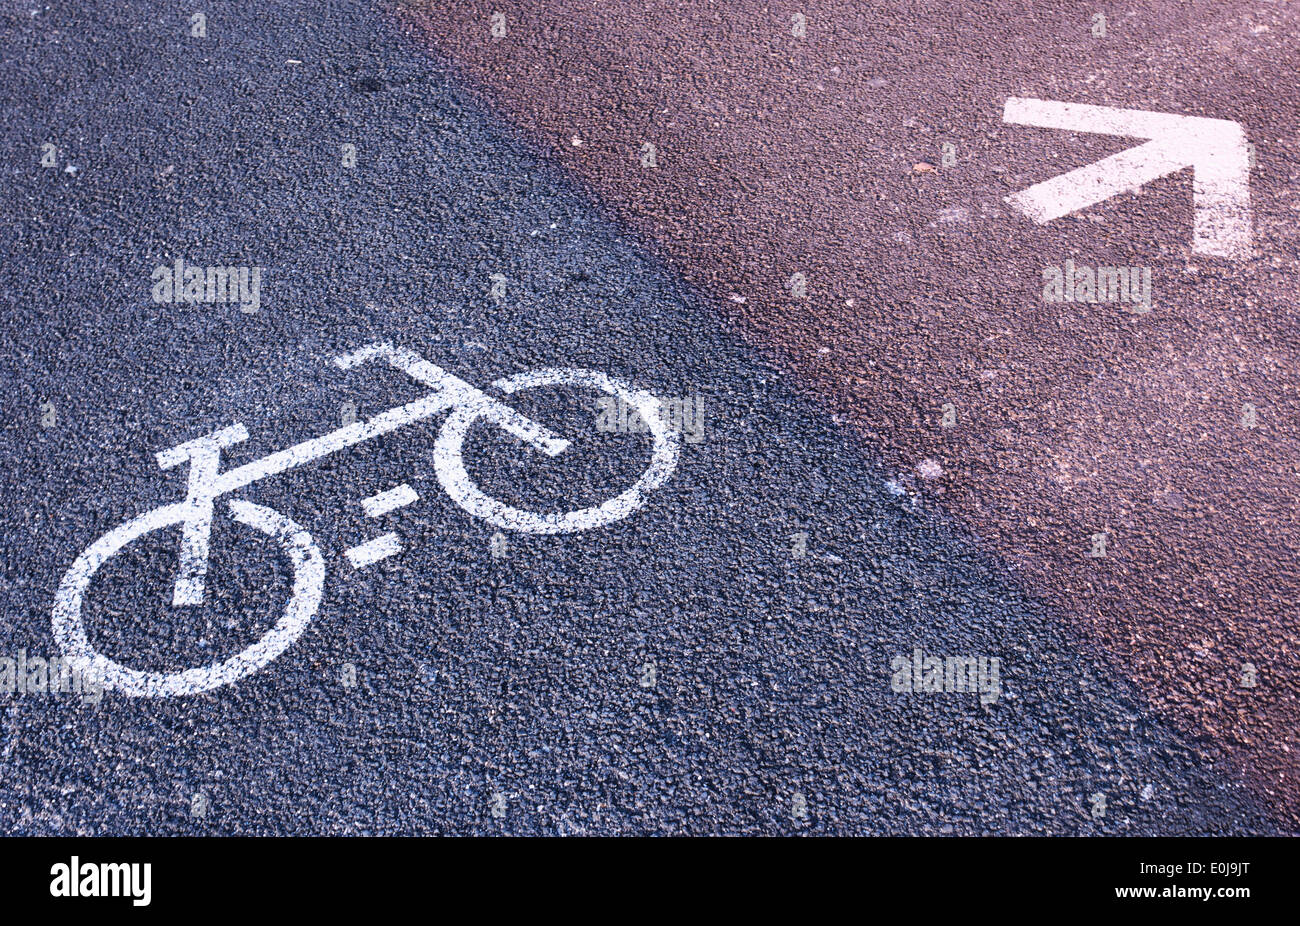 Sign painted on road indicating cycle lane. - Stock Image